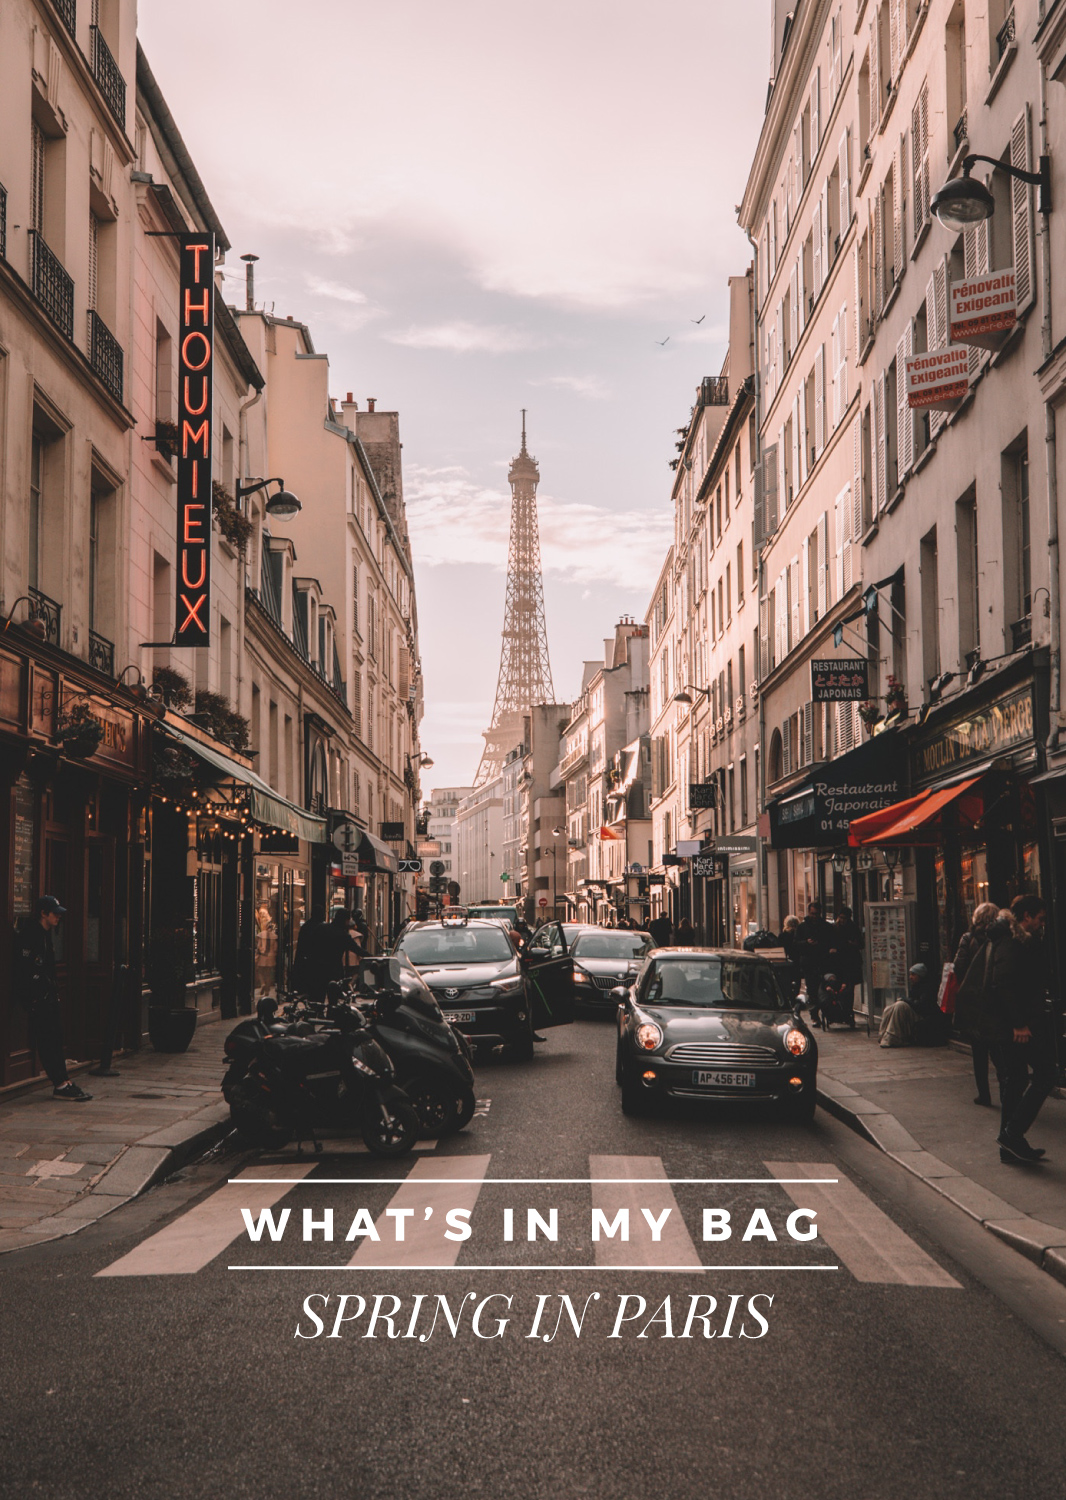 whats-in-my-bag_paris1